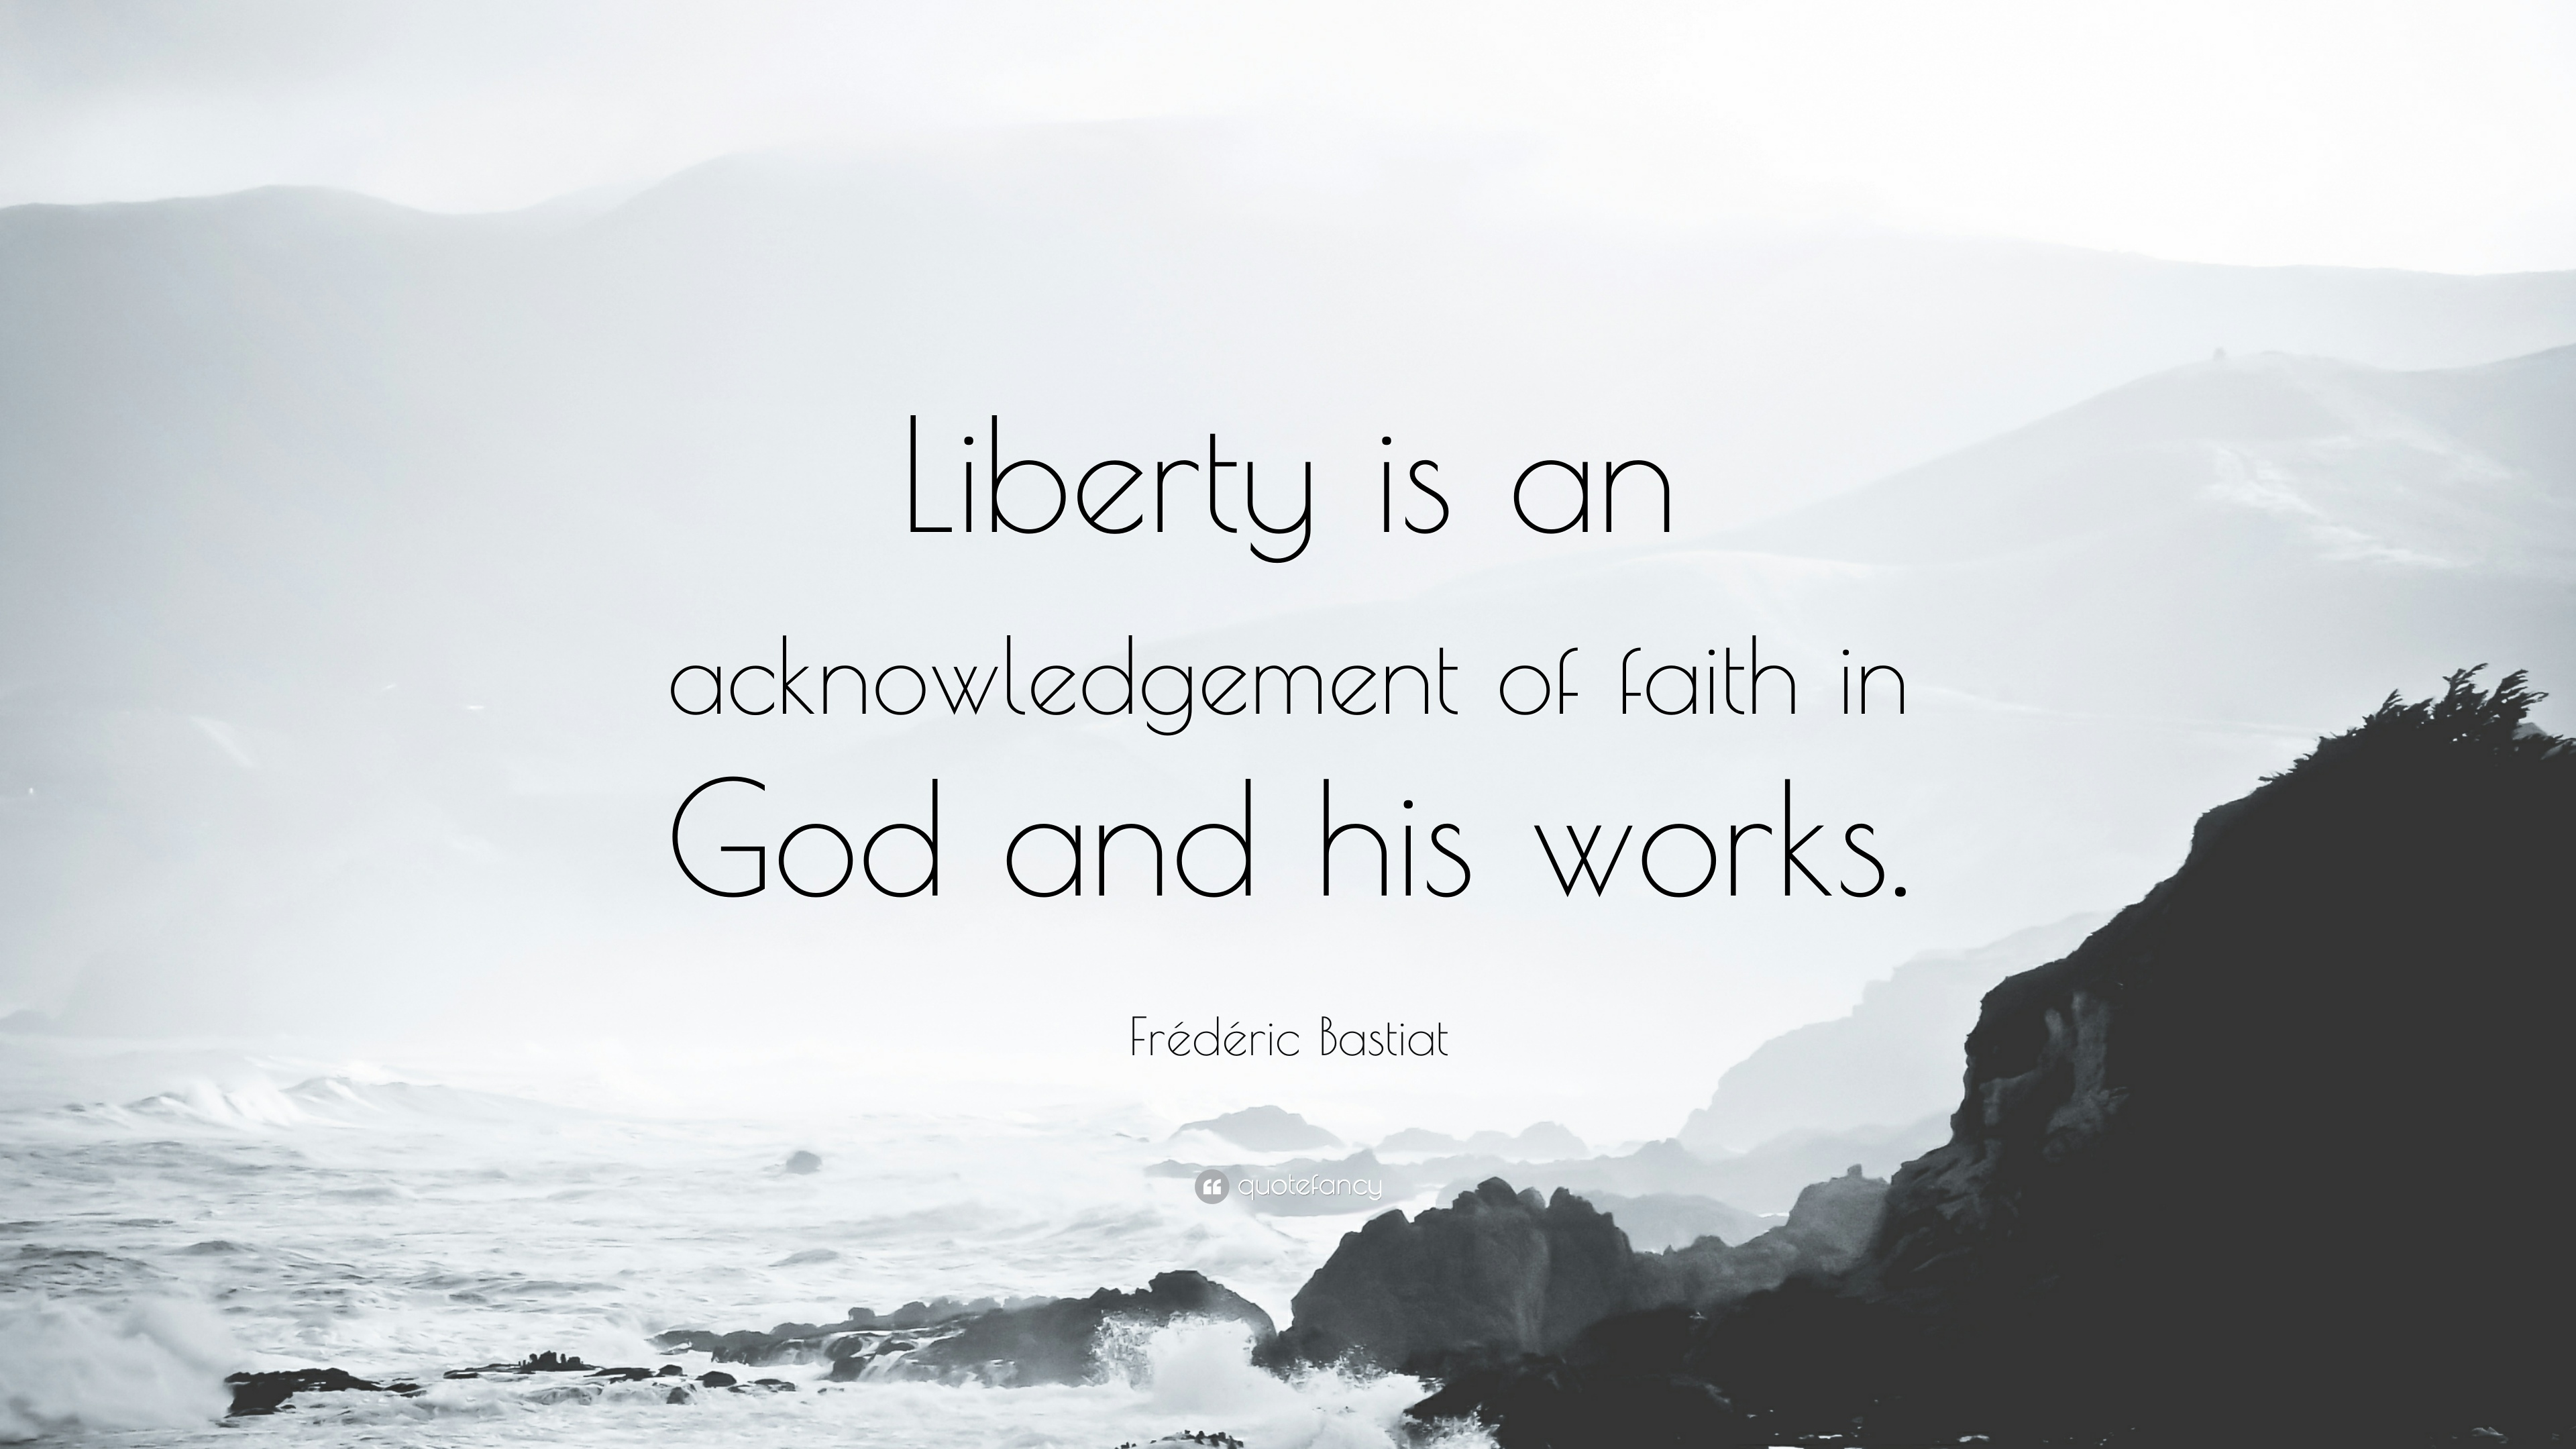 Frdric bastiat quote liberty is an acknowledgement of faith in frdric bastiat quote liberty is an acknowledgement of faith in god and his works altavistaventures Images